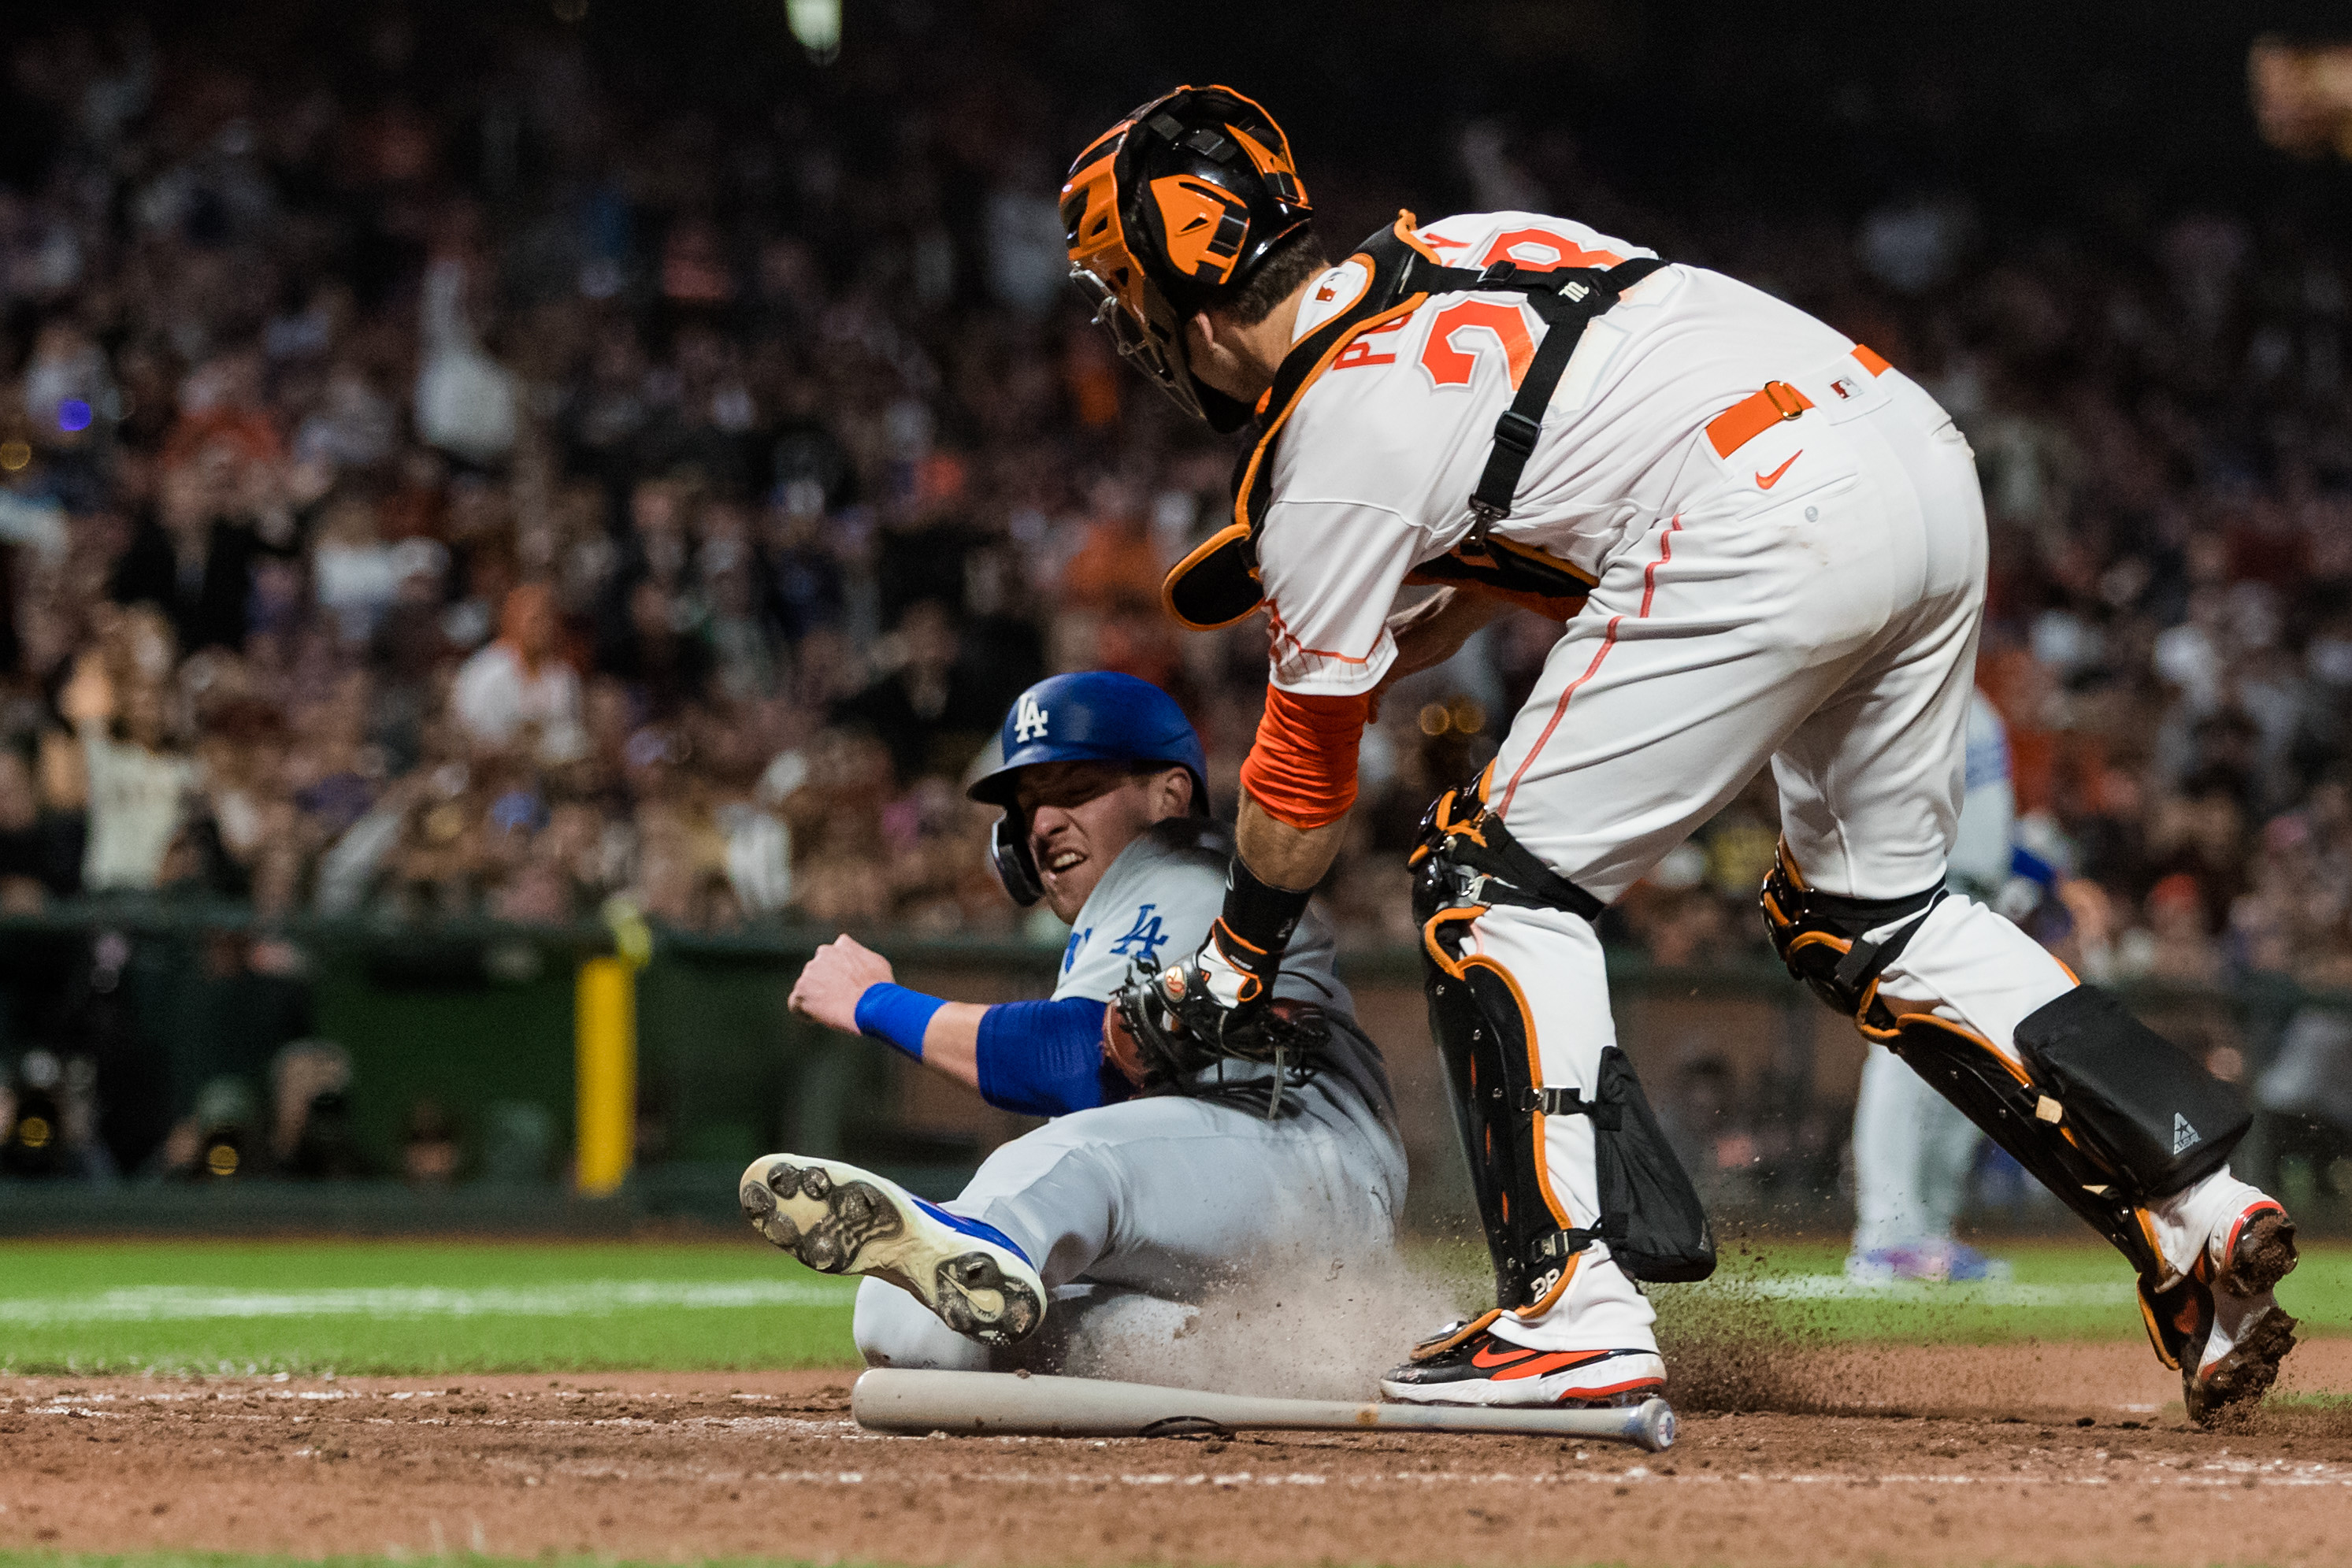 Jul 27, 2021; San Francisco, California, USA; San Francisco Giants catcher Buster Posey (28) tags Los Angeles Dodgers left fielder Luke Raley (37) in the eighth inning at Oracle Park. Mandatory Credit: John Hefti-USA TODAY Sports